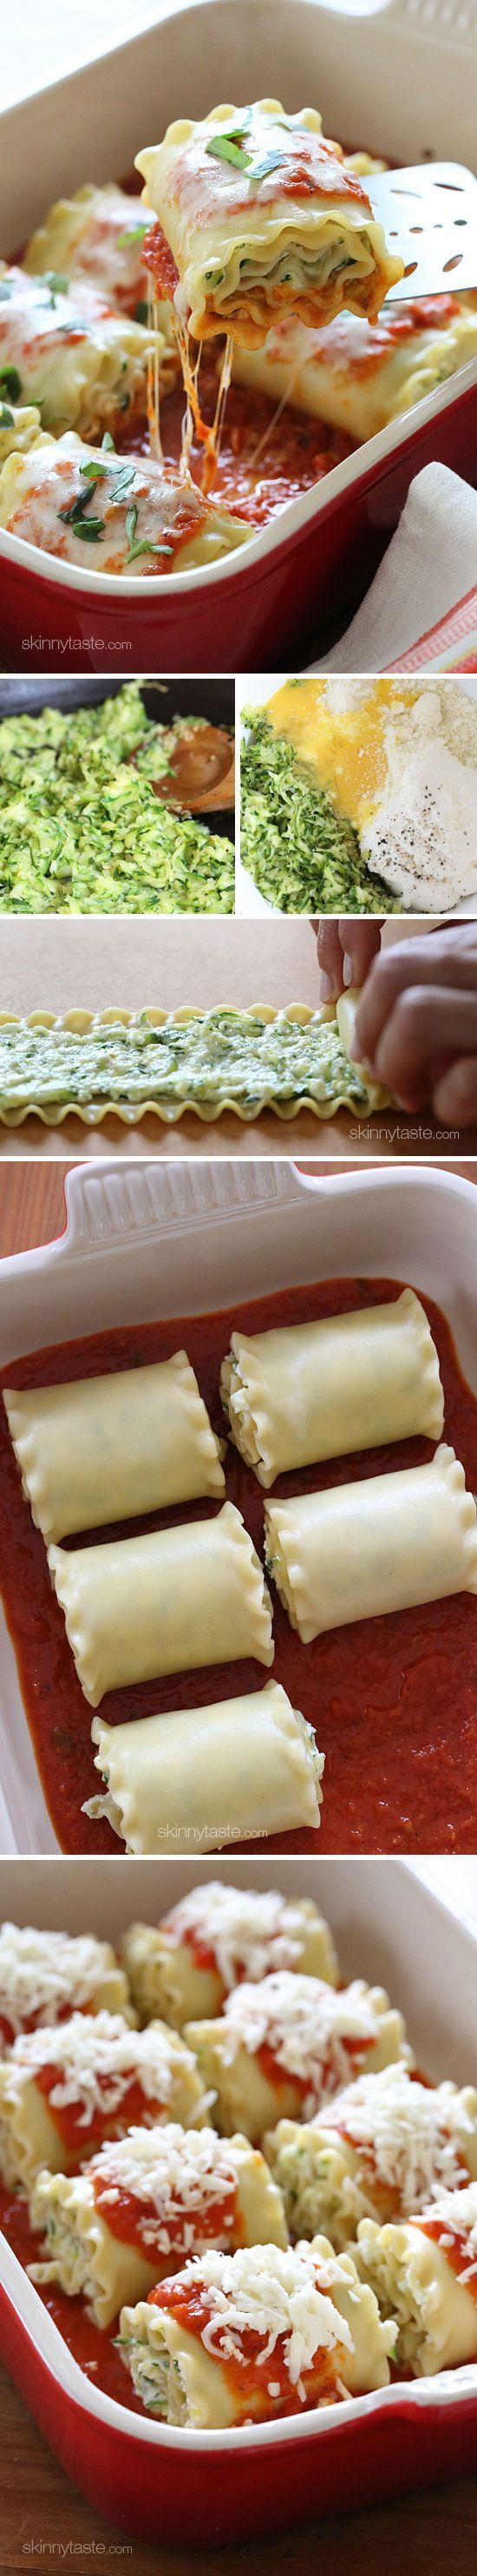 Easy, kid-friendly, freezer-friendly lasagna rolls stuffed with cheese and zucchini!